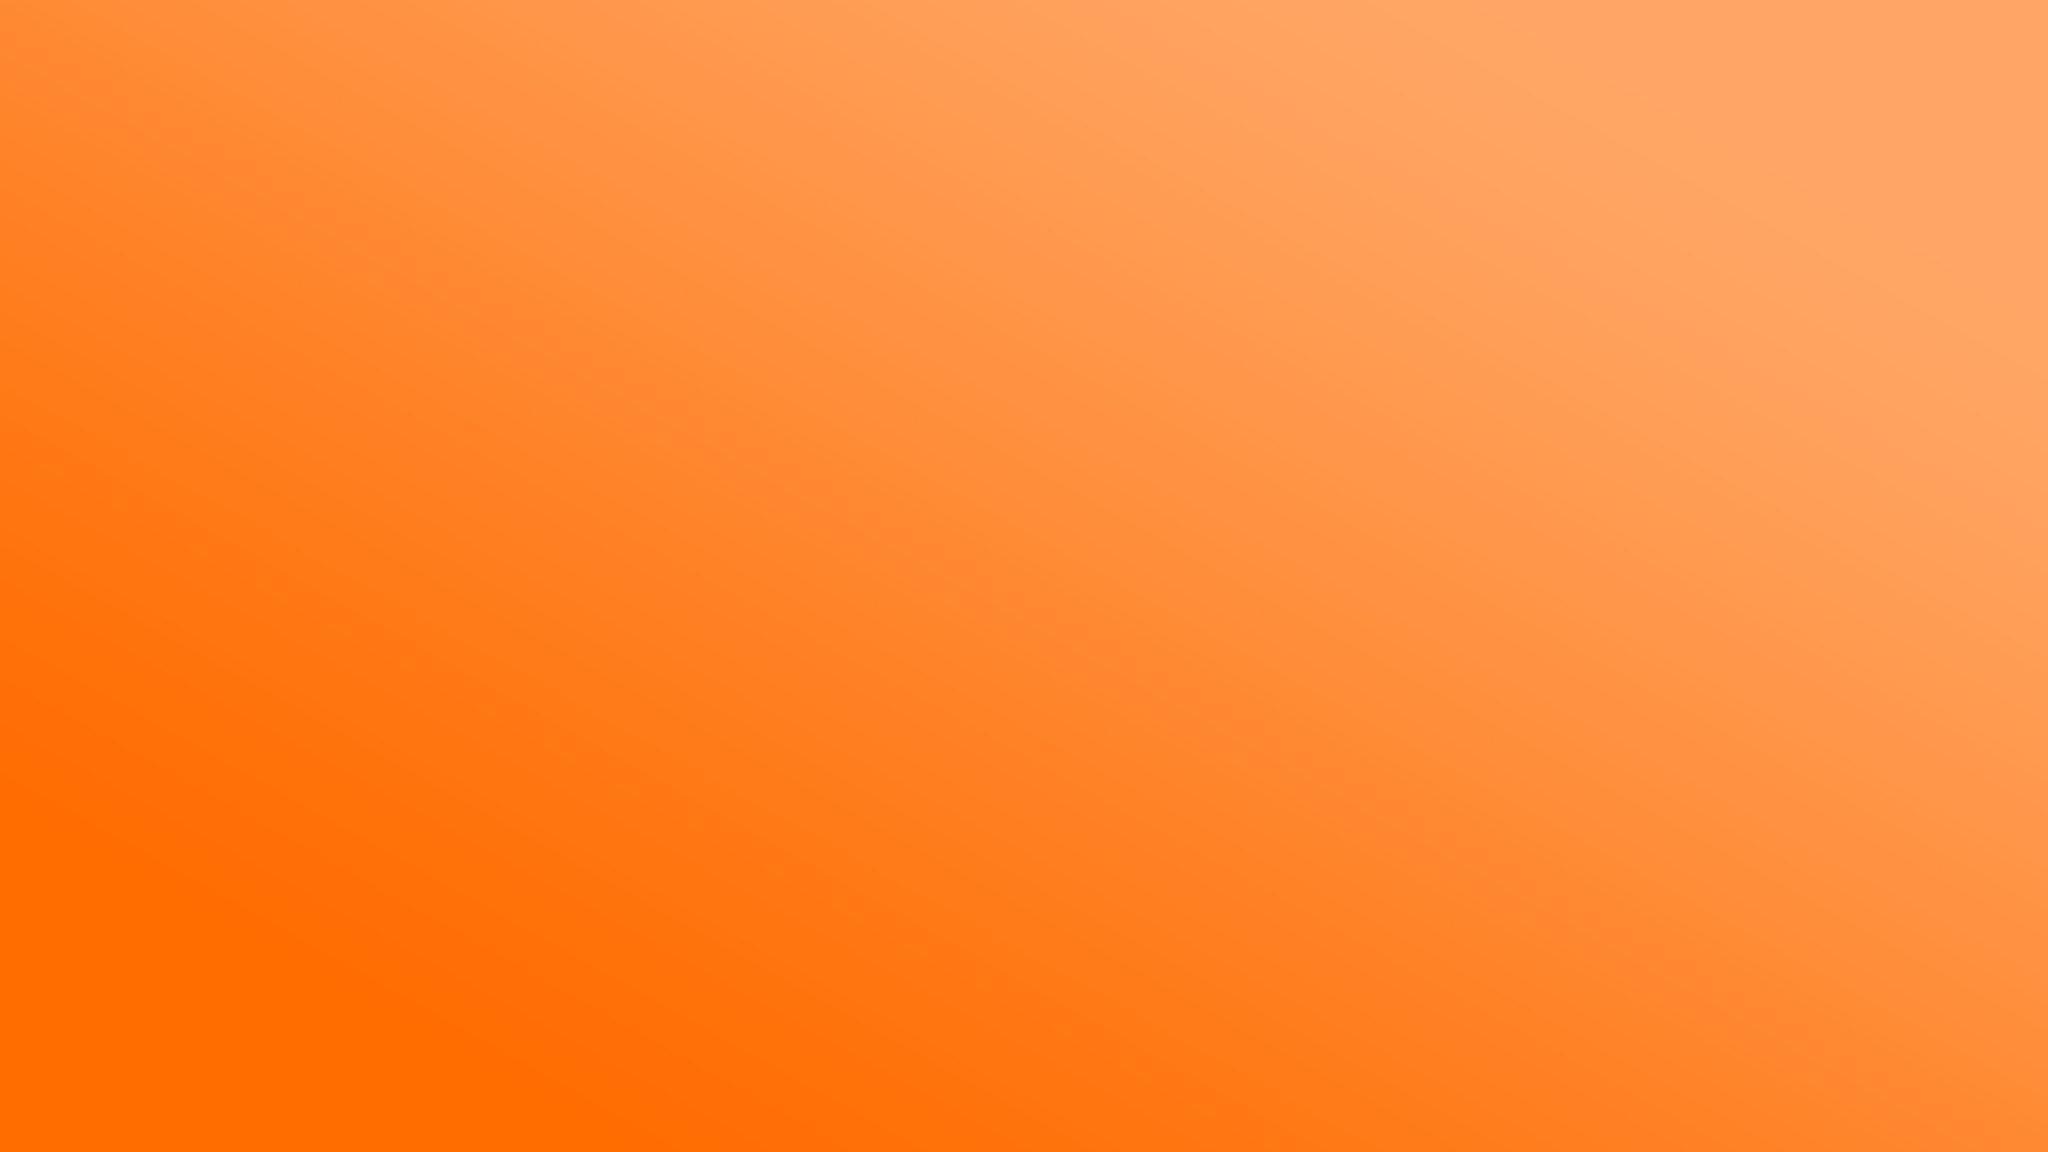 Orange metallic background